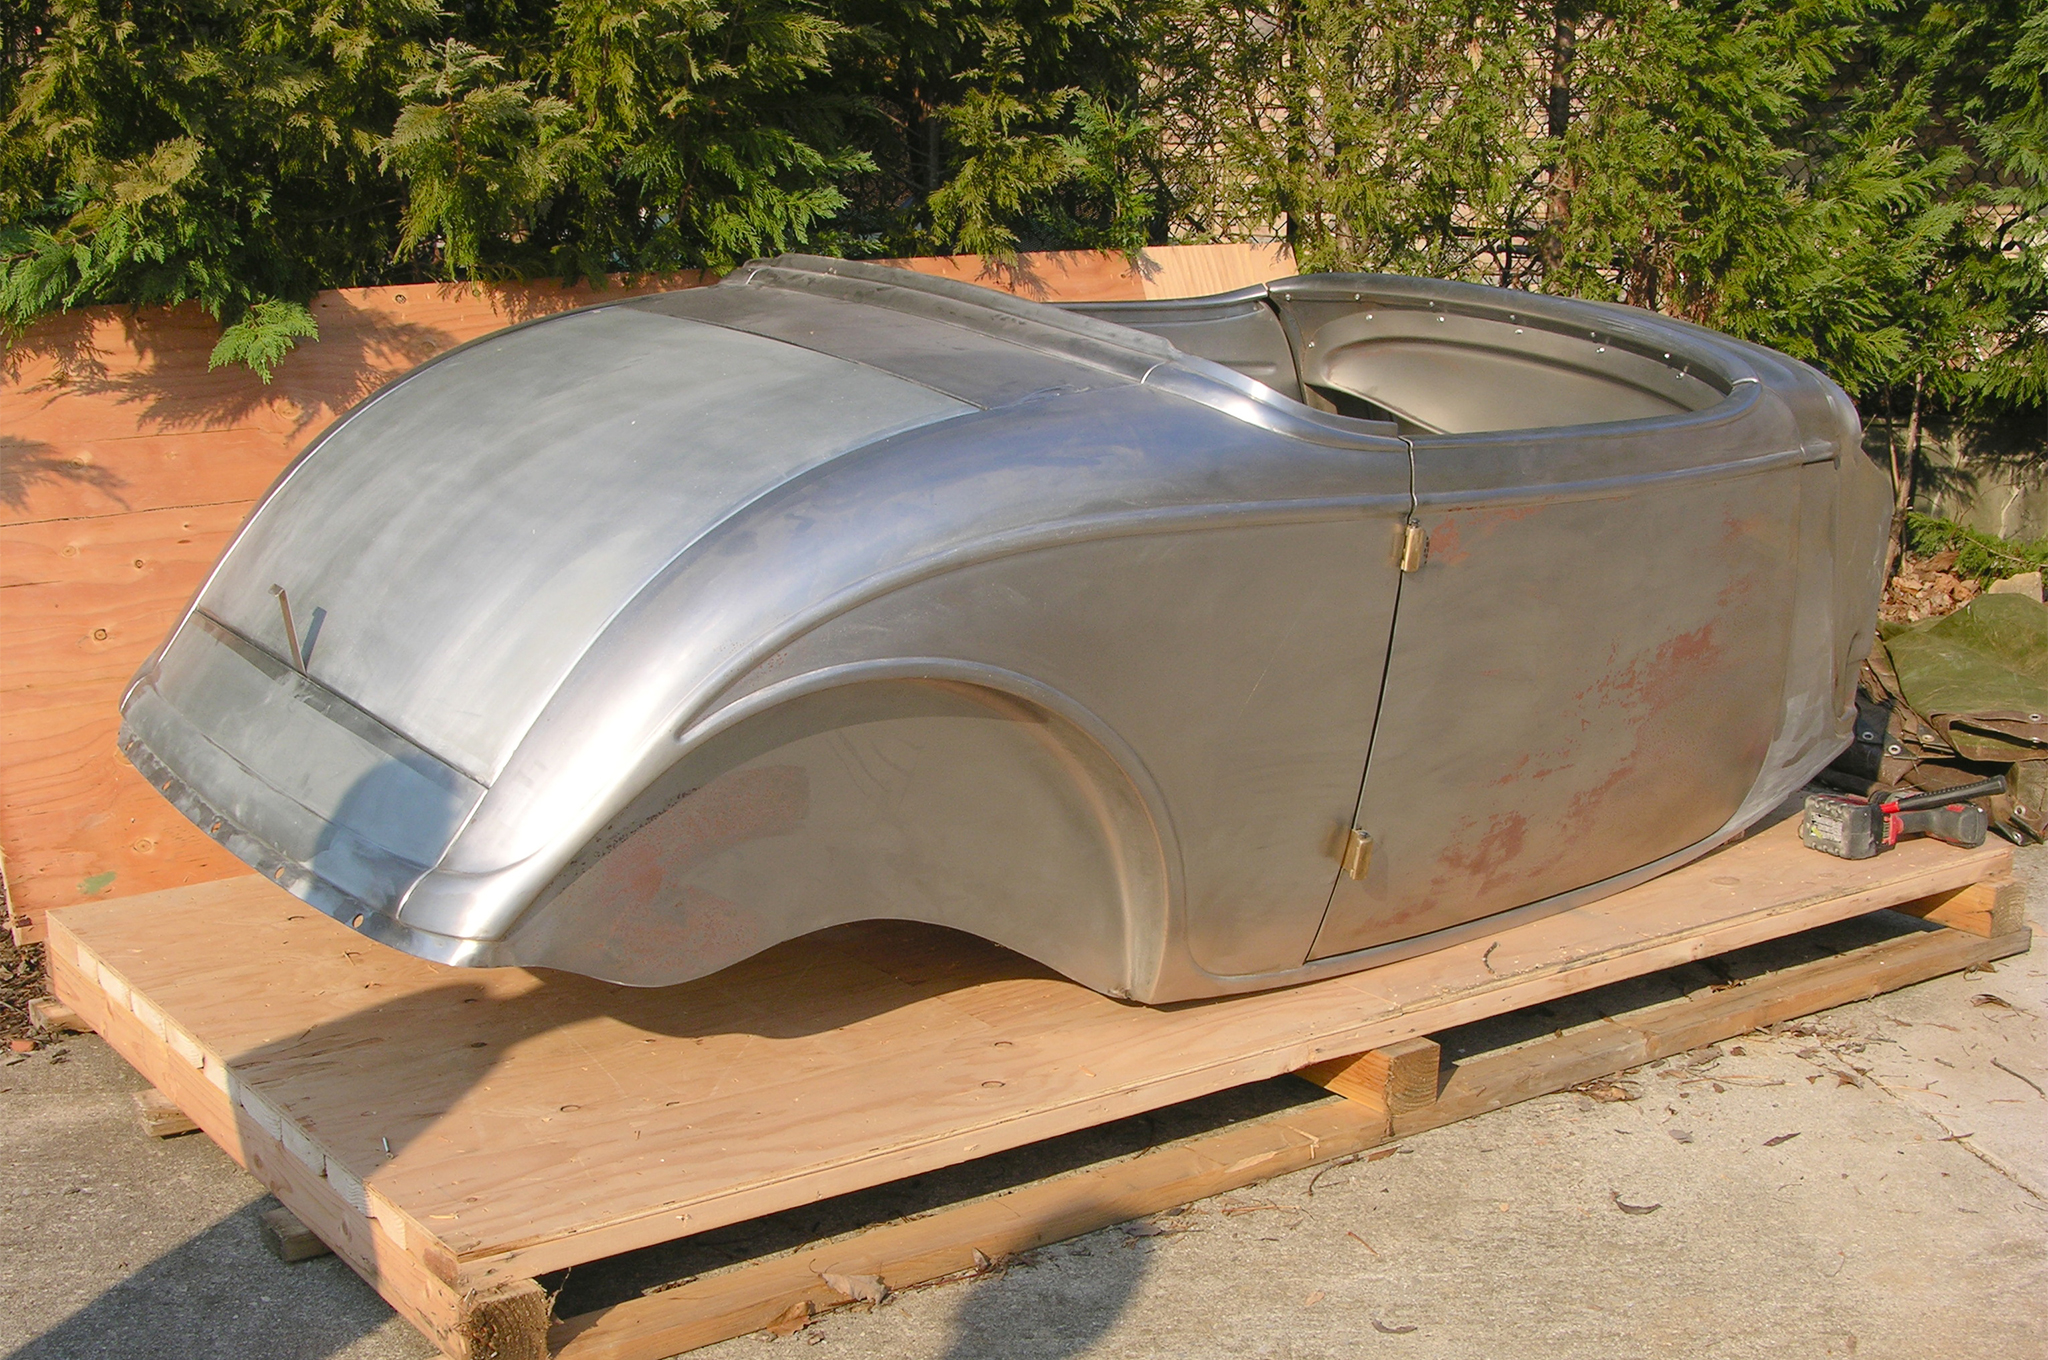 The reproduction 1933 Ford roadster body is the product of Steve's Auto Restorations (SAR) in Portland, Oregon. This body boasts a major change from the standard SAR roadster body because the doors are longer for better ingress and egress.